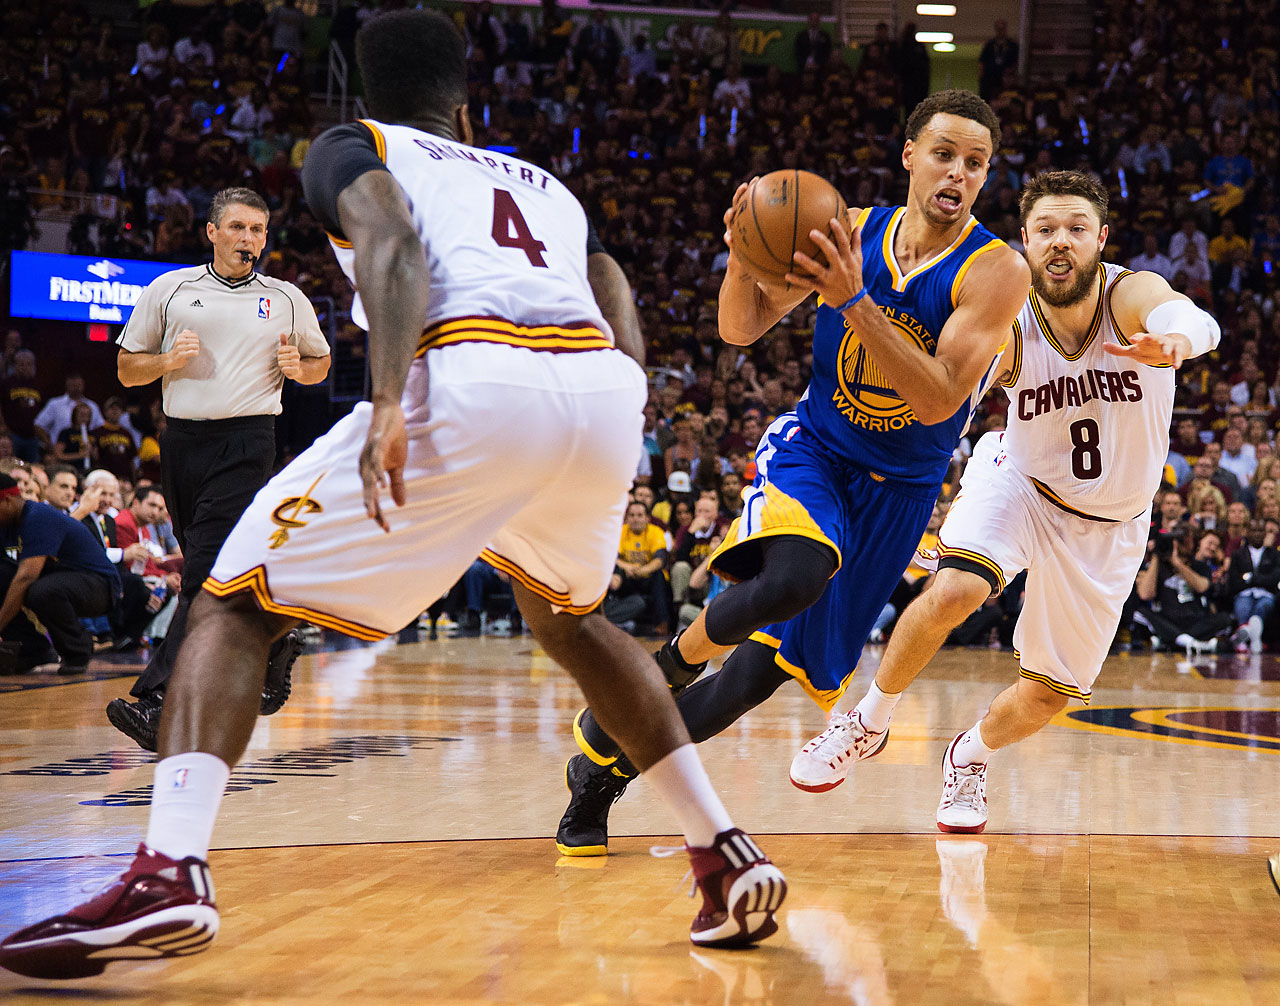 Steph Curry and the Warriors outscored the Cavaliers 28-18 in the third quarter, quieting a rocking Cleveland crowd in the process. (Text credit: AP)